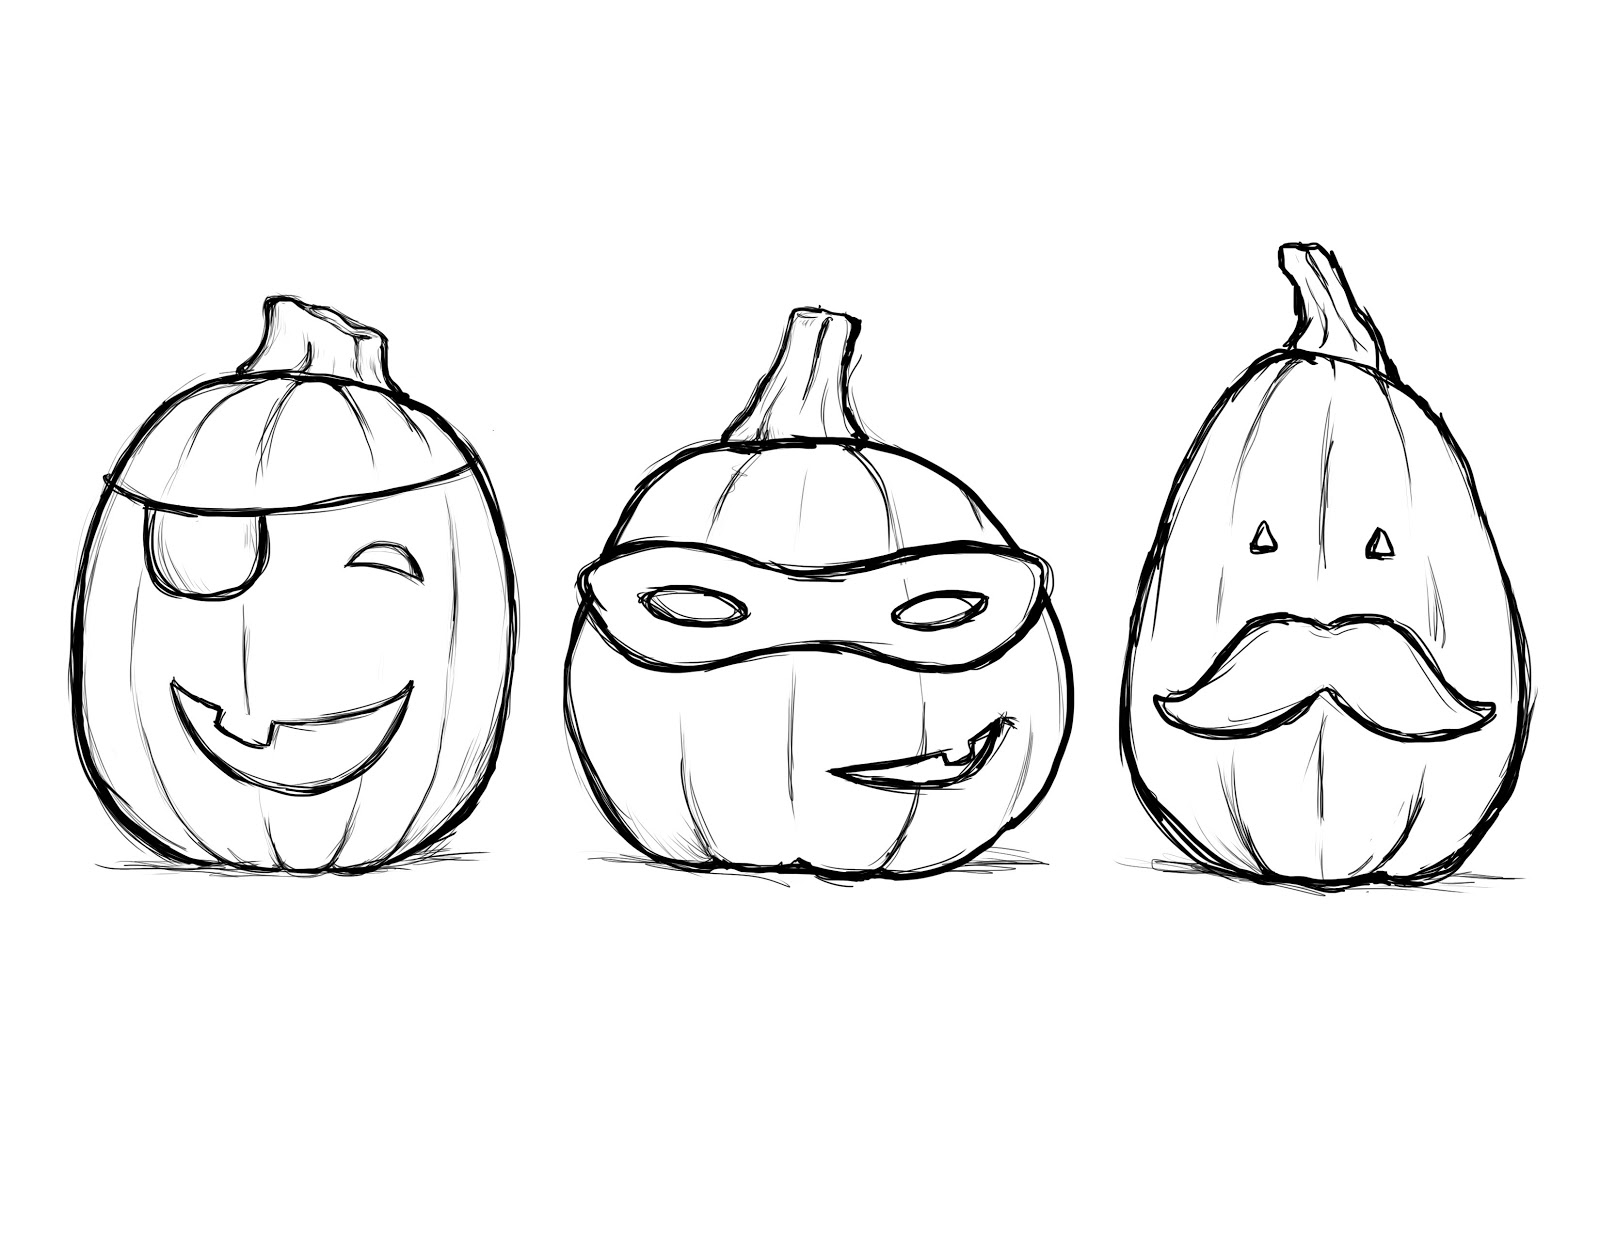 printable coloring pages halloween | creatively christy: Halloween Craft #4: Halloween Coloring ...